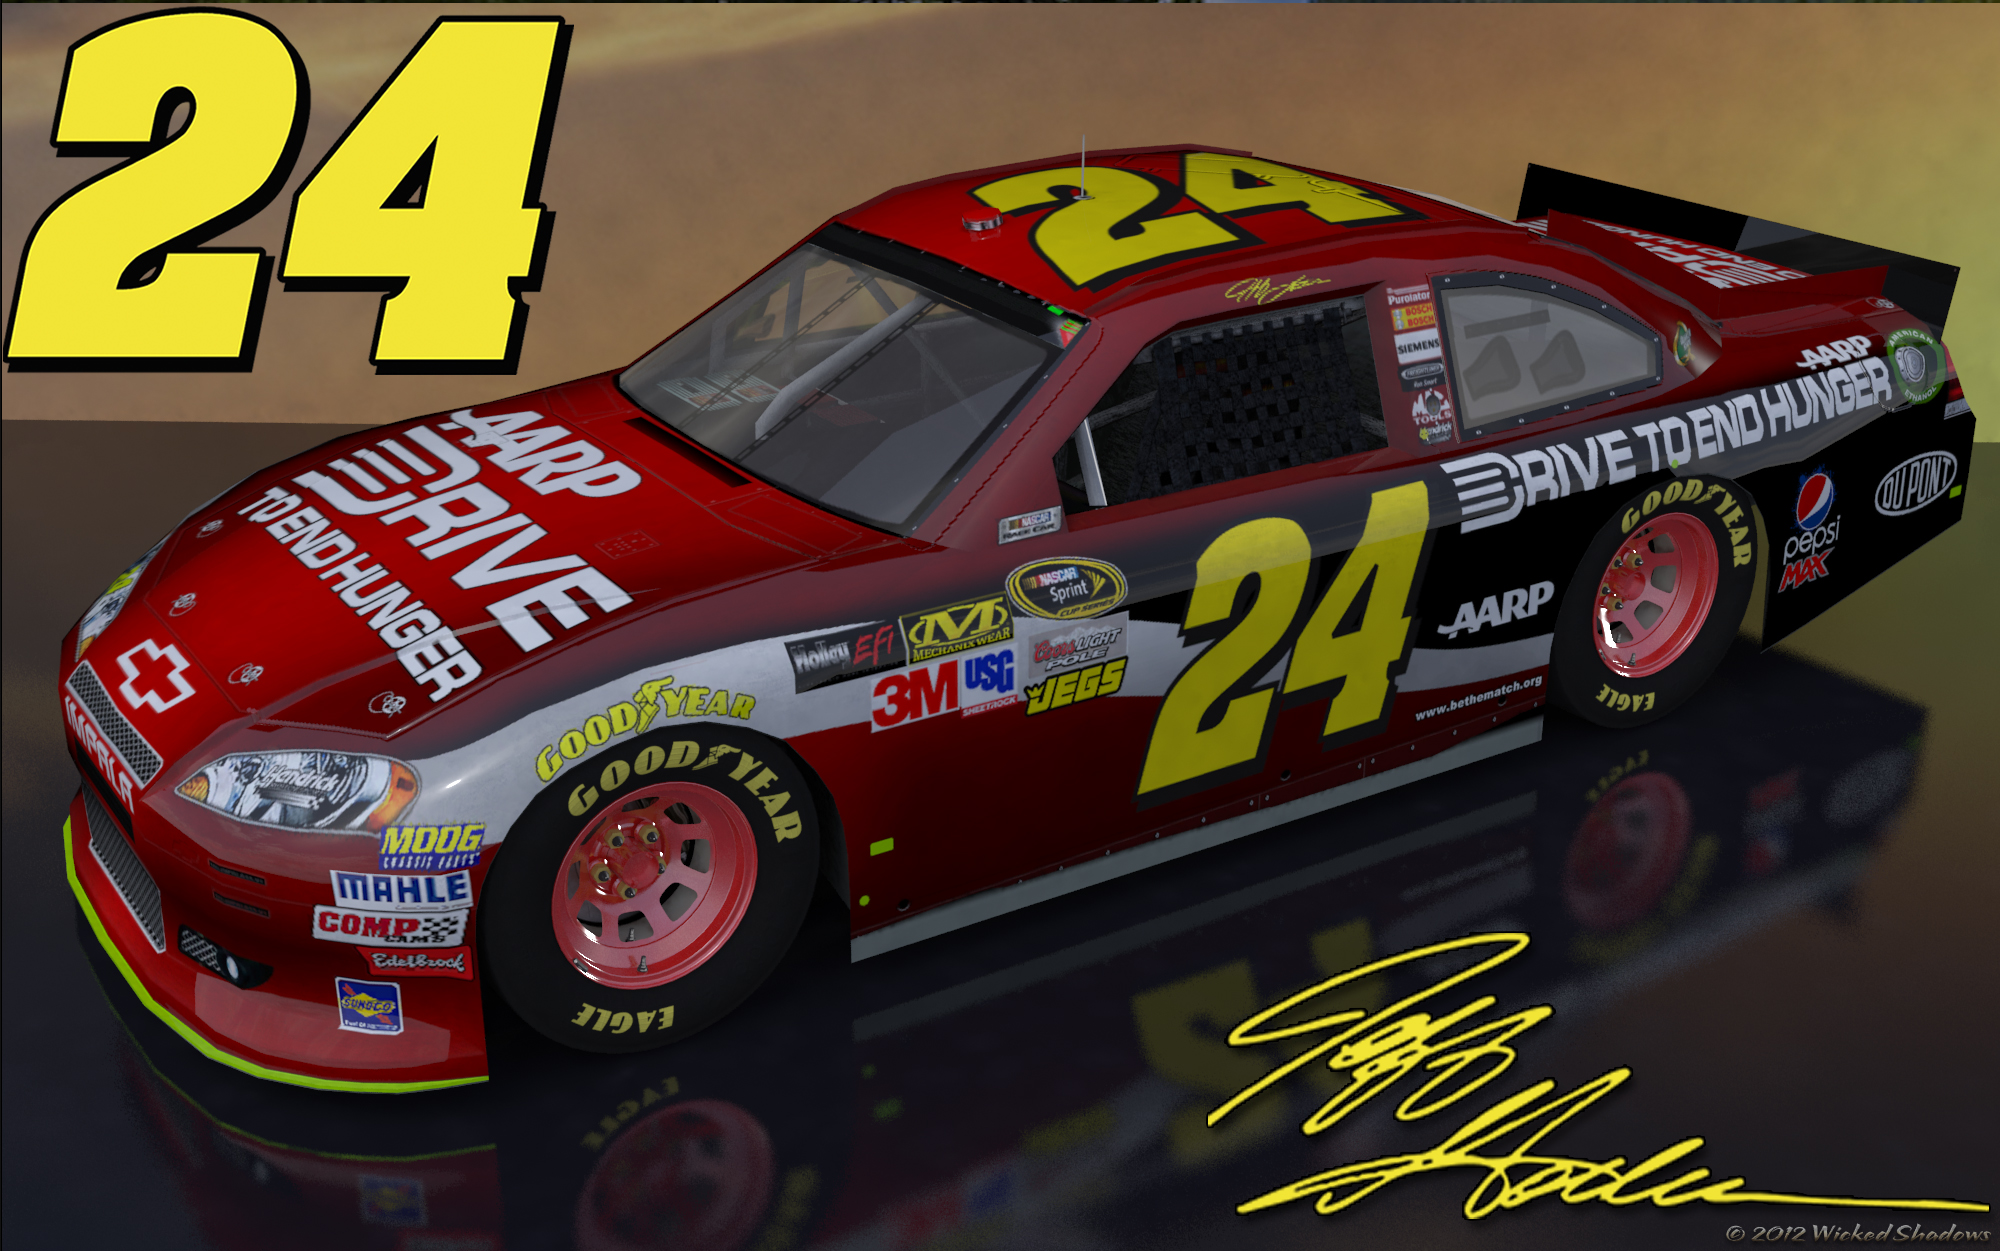 Jeff Gordon Drive To End Hunger Outdoor Wallpaper